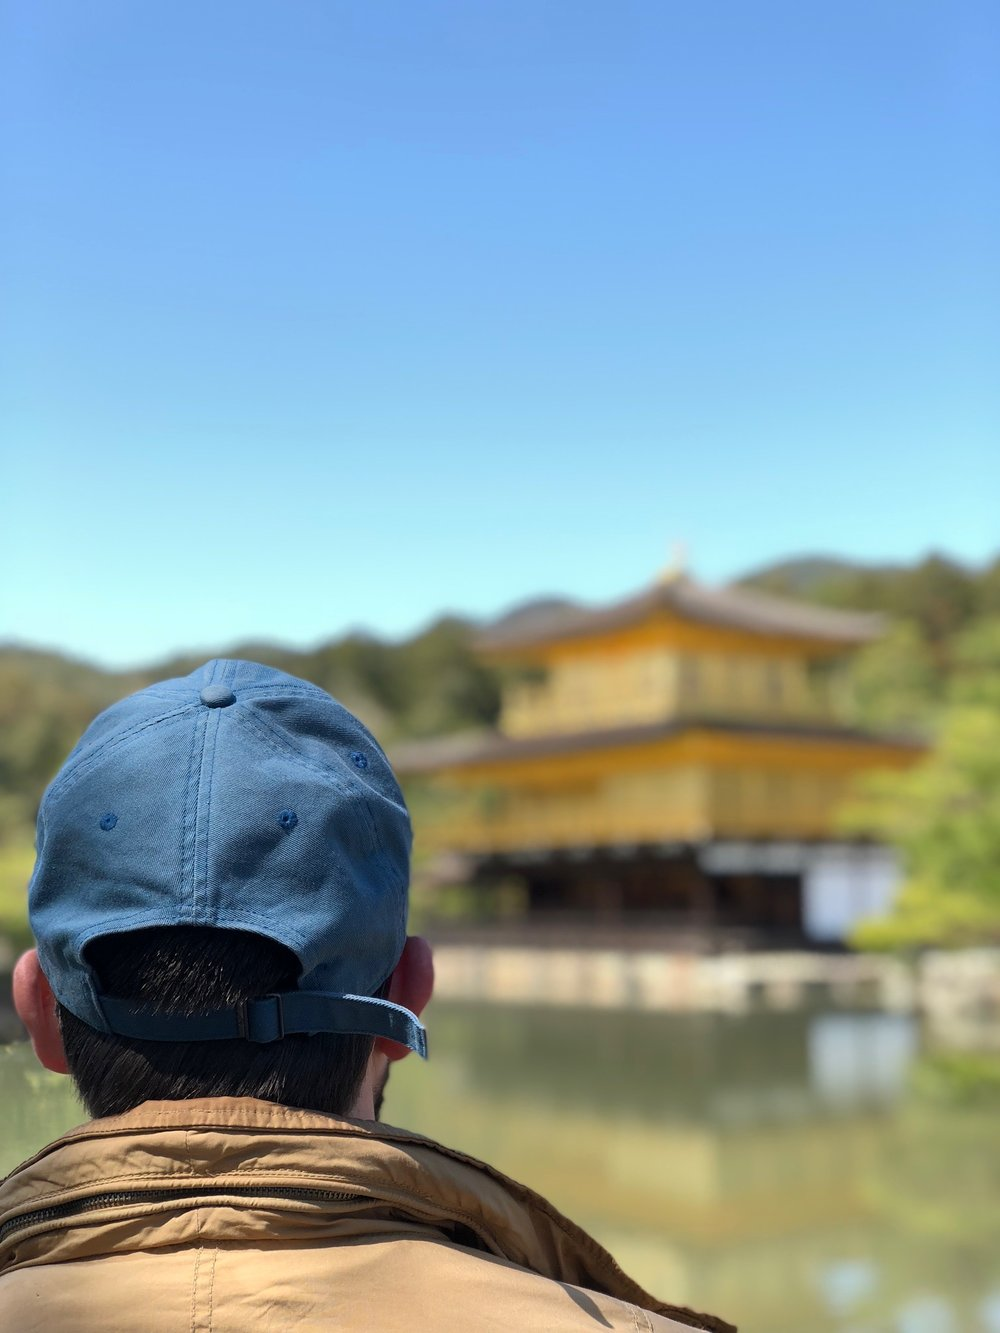 Steve looks on at the awe-inspiring Kinkaku-ji on our second day in Kyoto. Unlike our rainy first full day, we couldn't have asked for better weather.